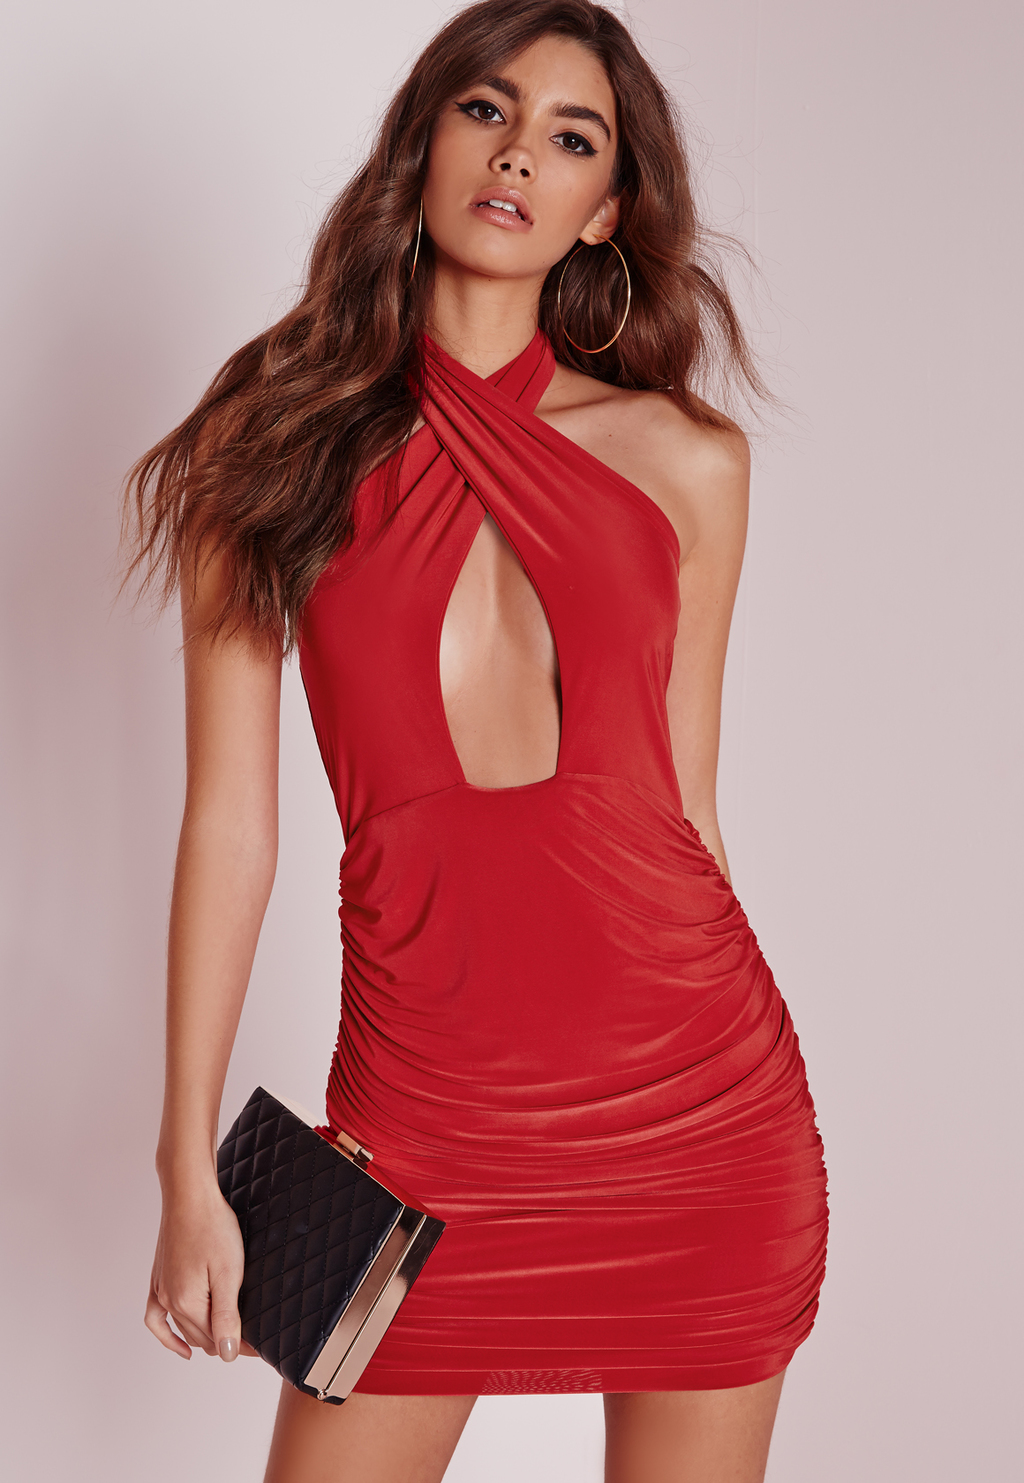 Slinky Halter Ruche Bodycon Dress Red, Red - length: mini; fit: tight; pattern: plain; sleeve style: sleeveless; style: bodycon; neckline: low halter neck; back detail: back revealing; predominant colour: true red; occasions: evening; fibres: polyester/polyamide - stretch; sleeve length: sleeveless; texture group: jersey - clingy; pattern type: fabric; season: a/w 2015; wardrobe: event